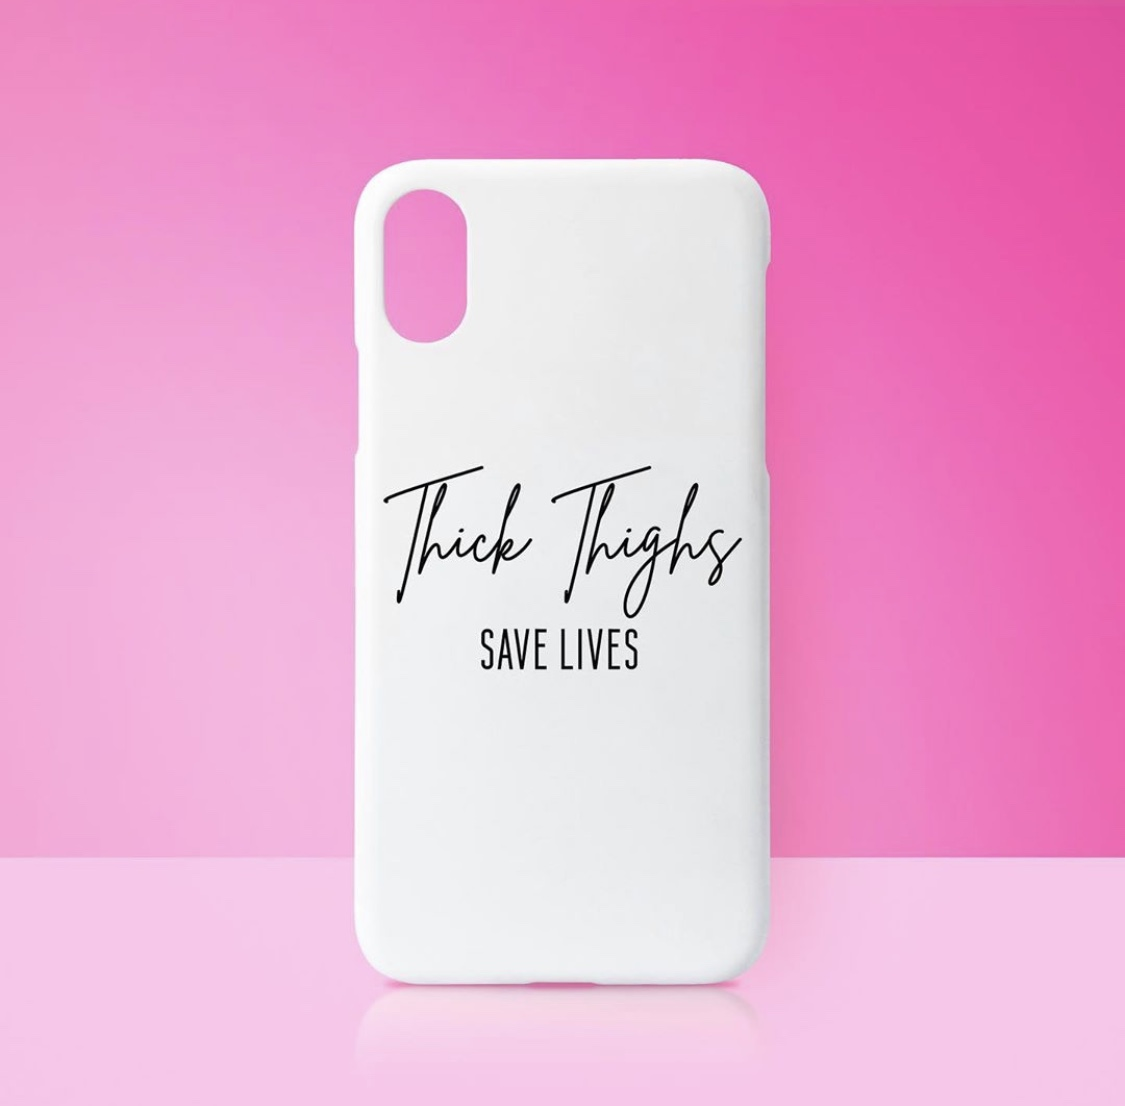 Personalised photo phone case on ARTWOW store: THICK THIGHS SAVE LIVES - by Sarah Talbot-Goldman